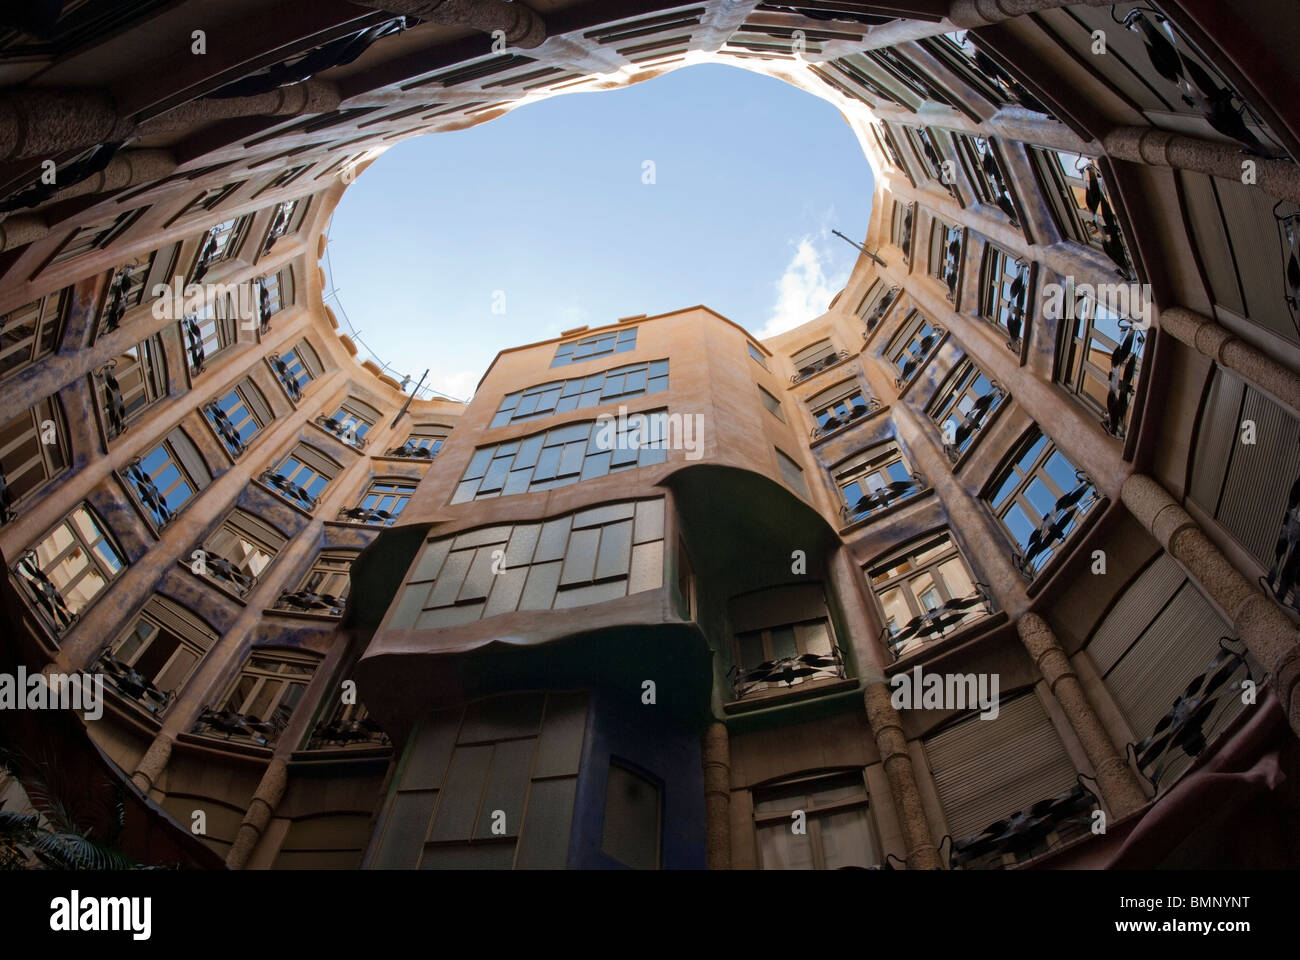 Casa Mila viewed looking up the interior of the apartment block - Stock Image